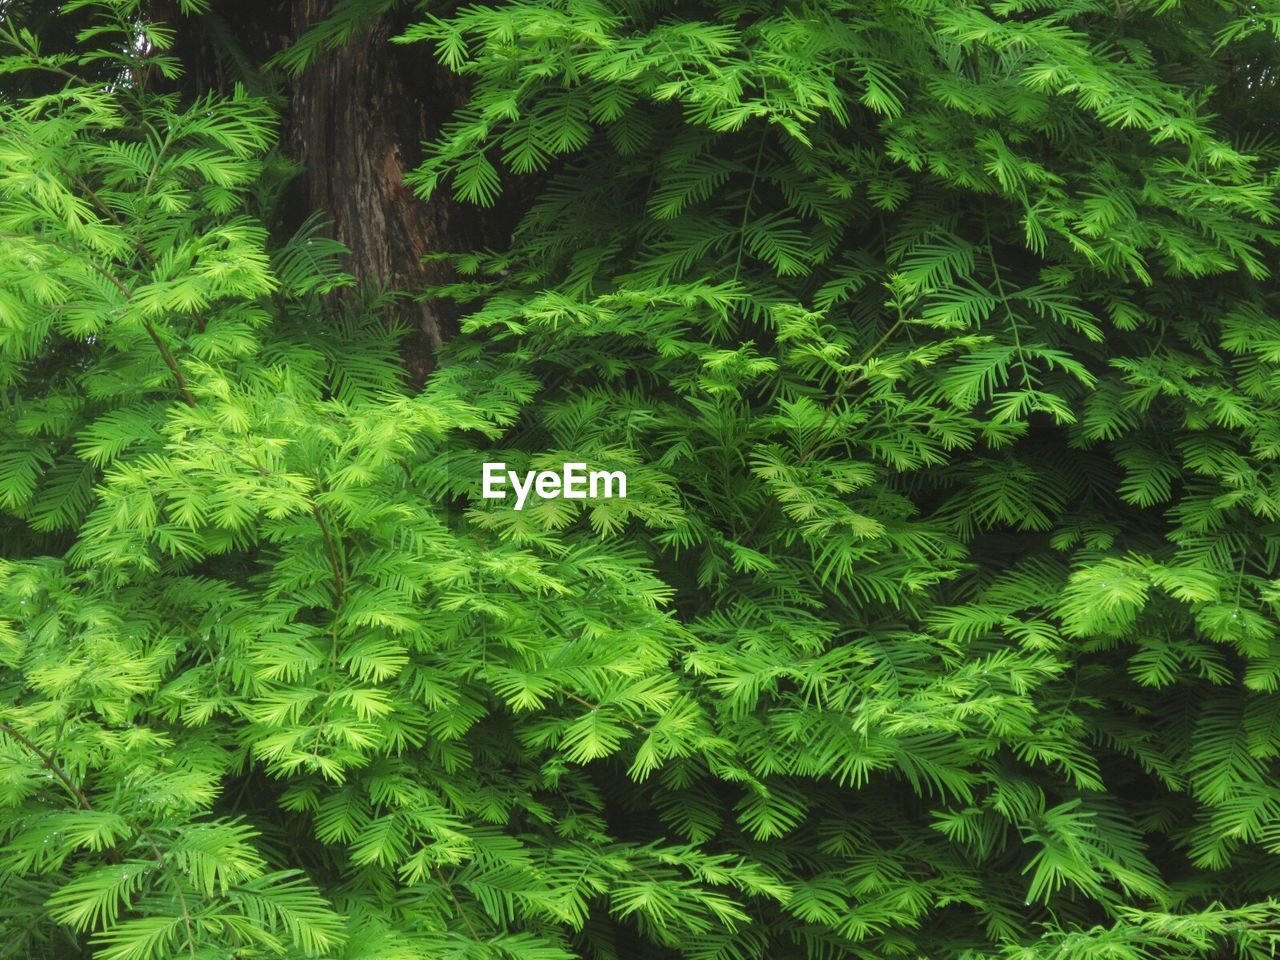 green color, growth, nature, plant, beauty in nature, no people, fern, tree, day, outdoors, close-up, freshness